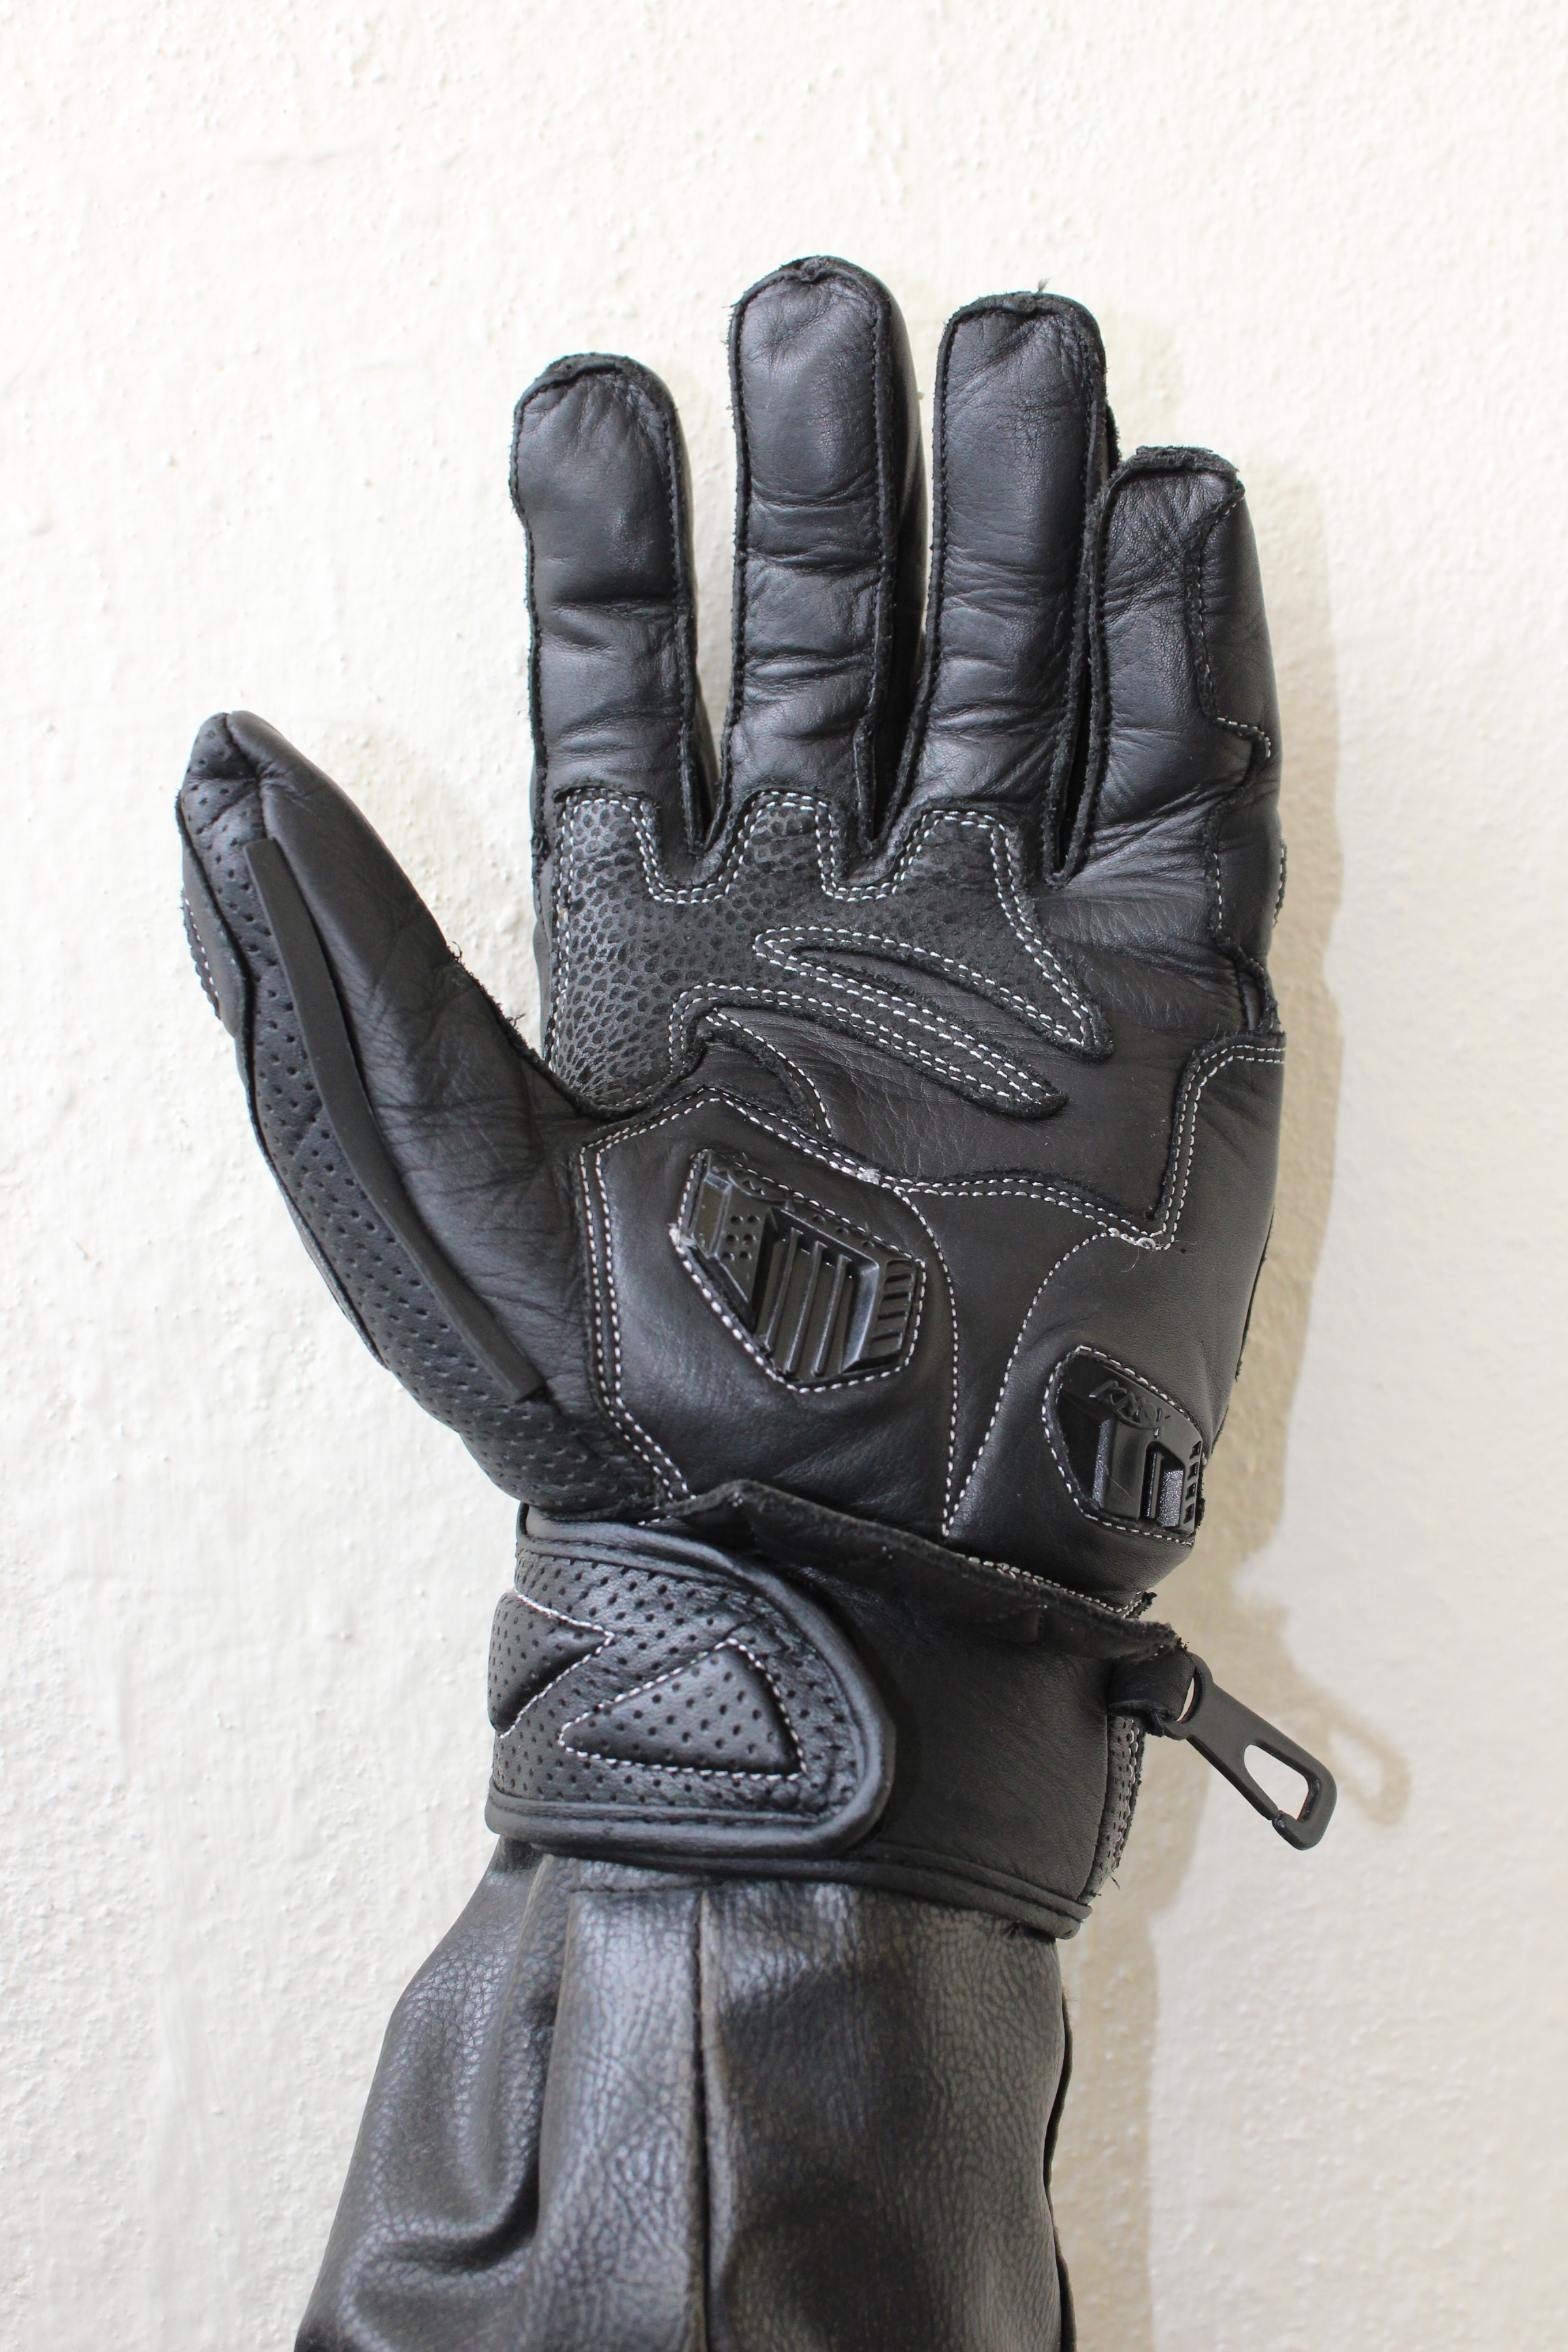 Motorcycle gloves bangalore - Motorcycle Gloves Bangalore Face